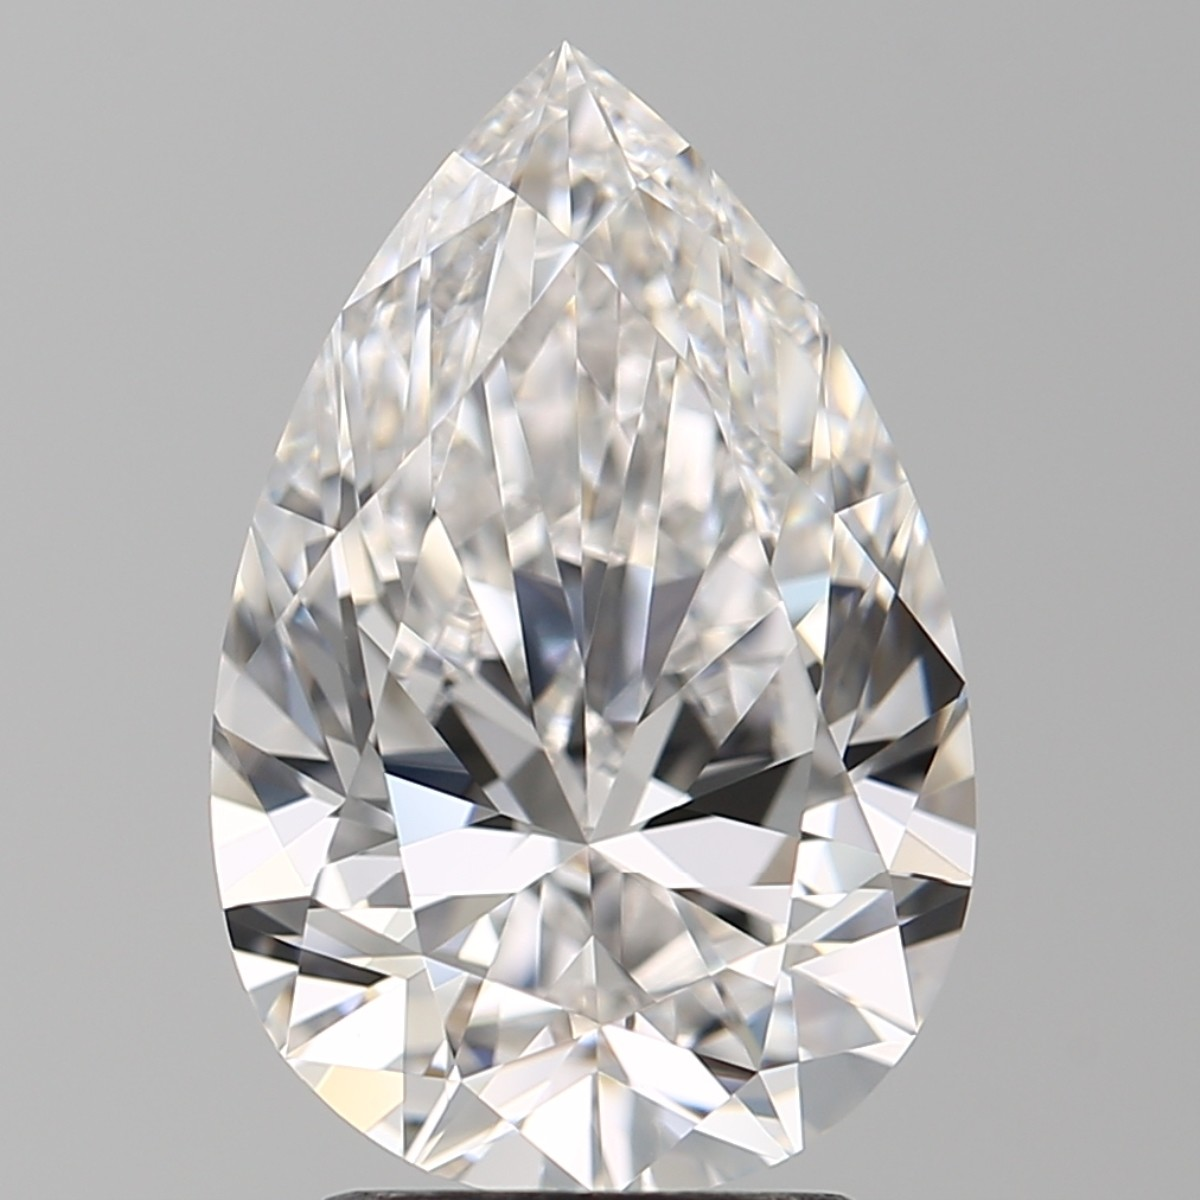 3.01 Carat Pear Diamond (E/IF)